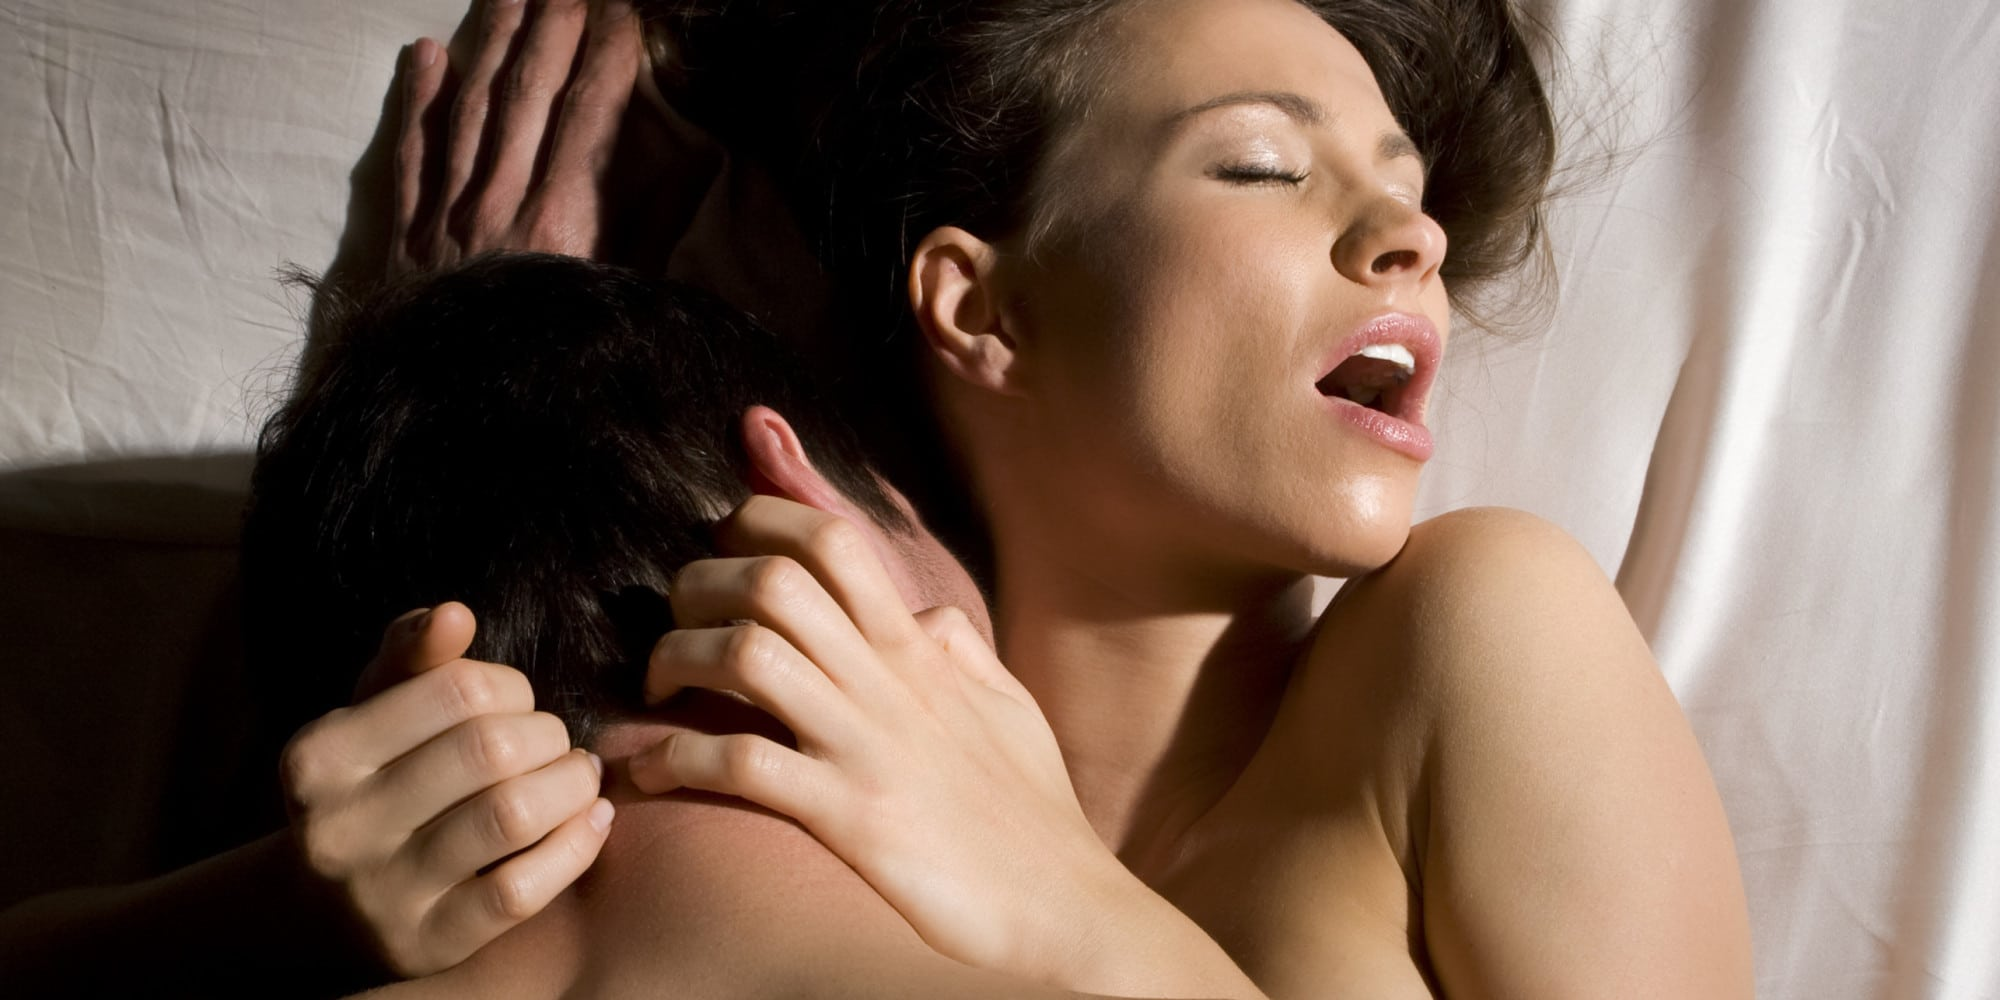 Women with rich husbands have stronger orgasm!: http://constative.com/romance/women-rich-husbands-stronger-orgasm